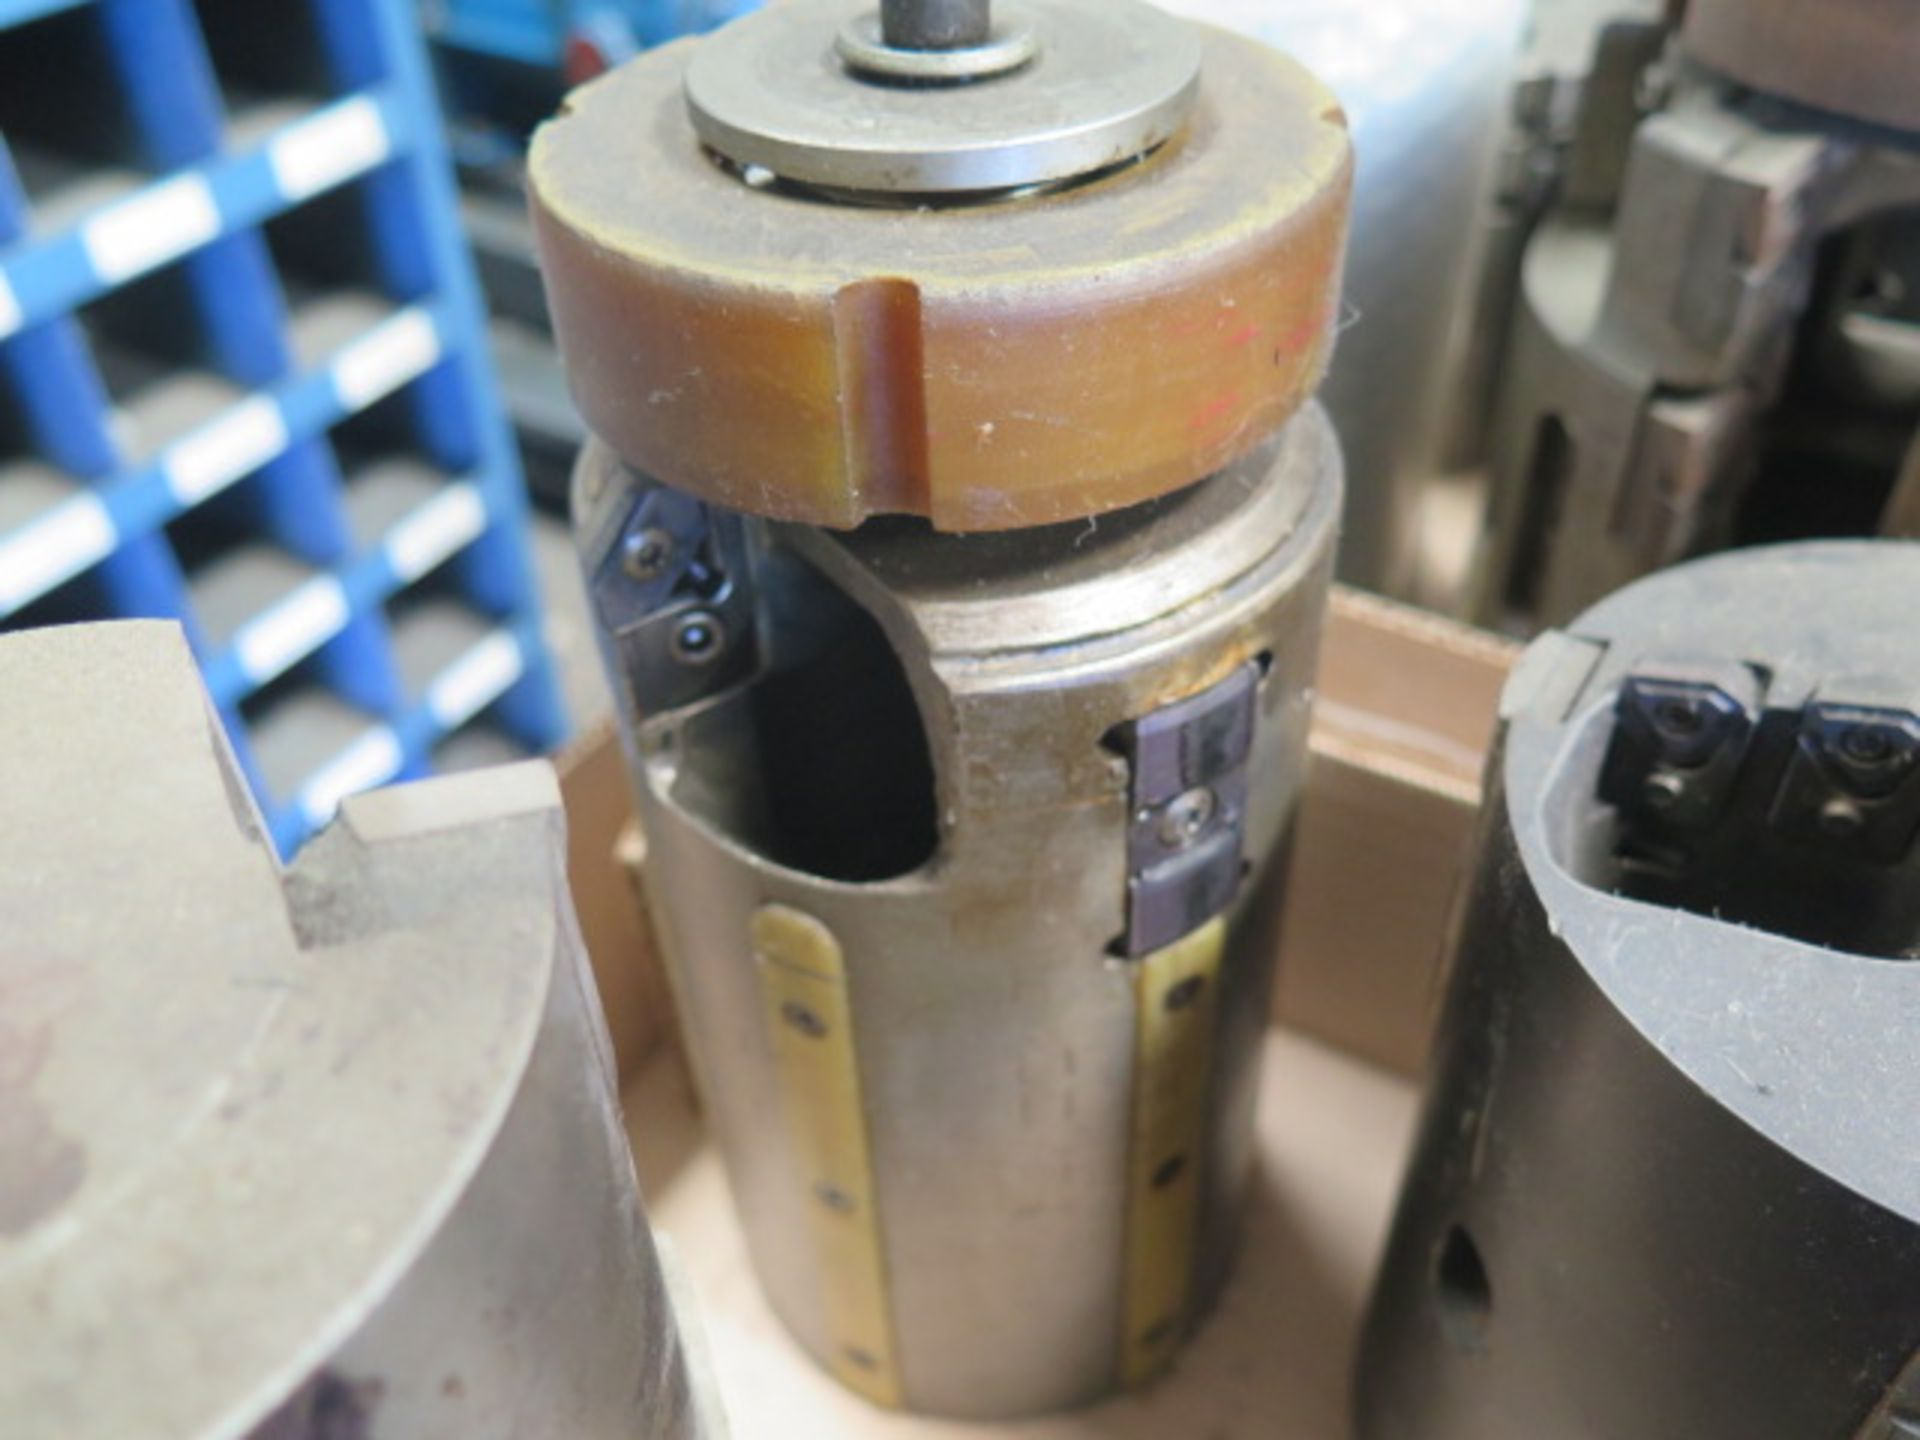 Large Diameter Insert Tube Drills (SOLD AS-IS - NO WARRANTY) - Image 6 of 7